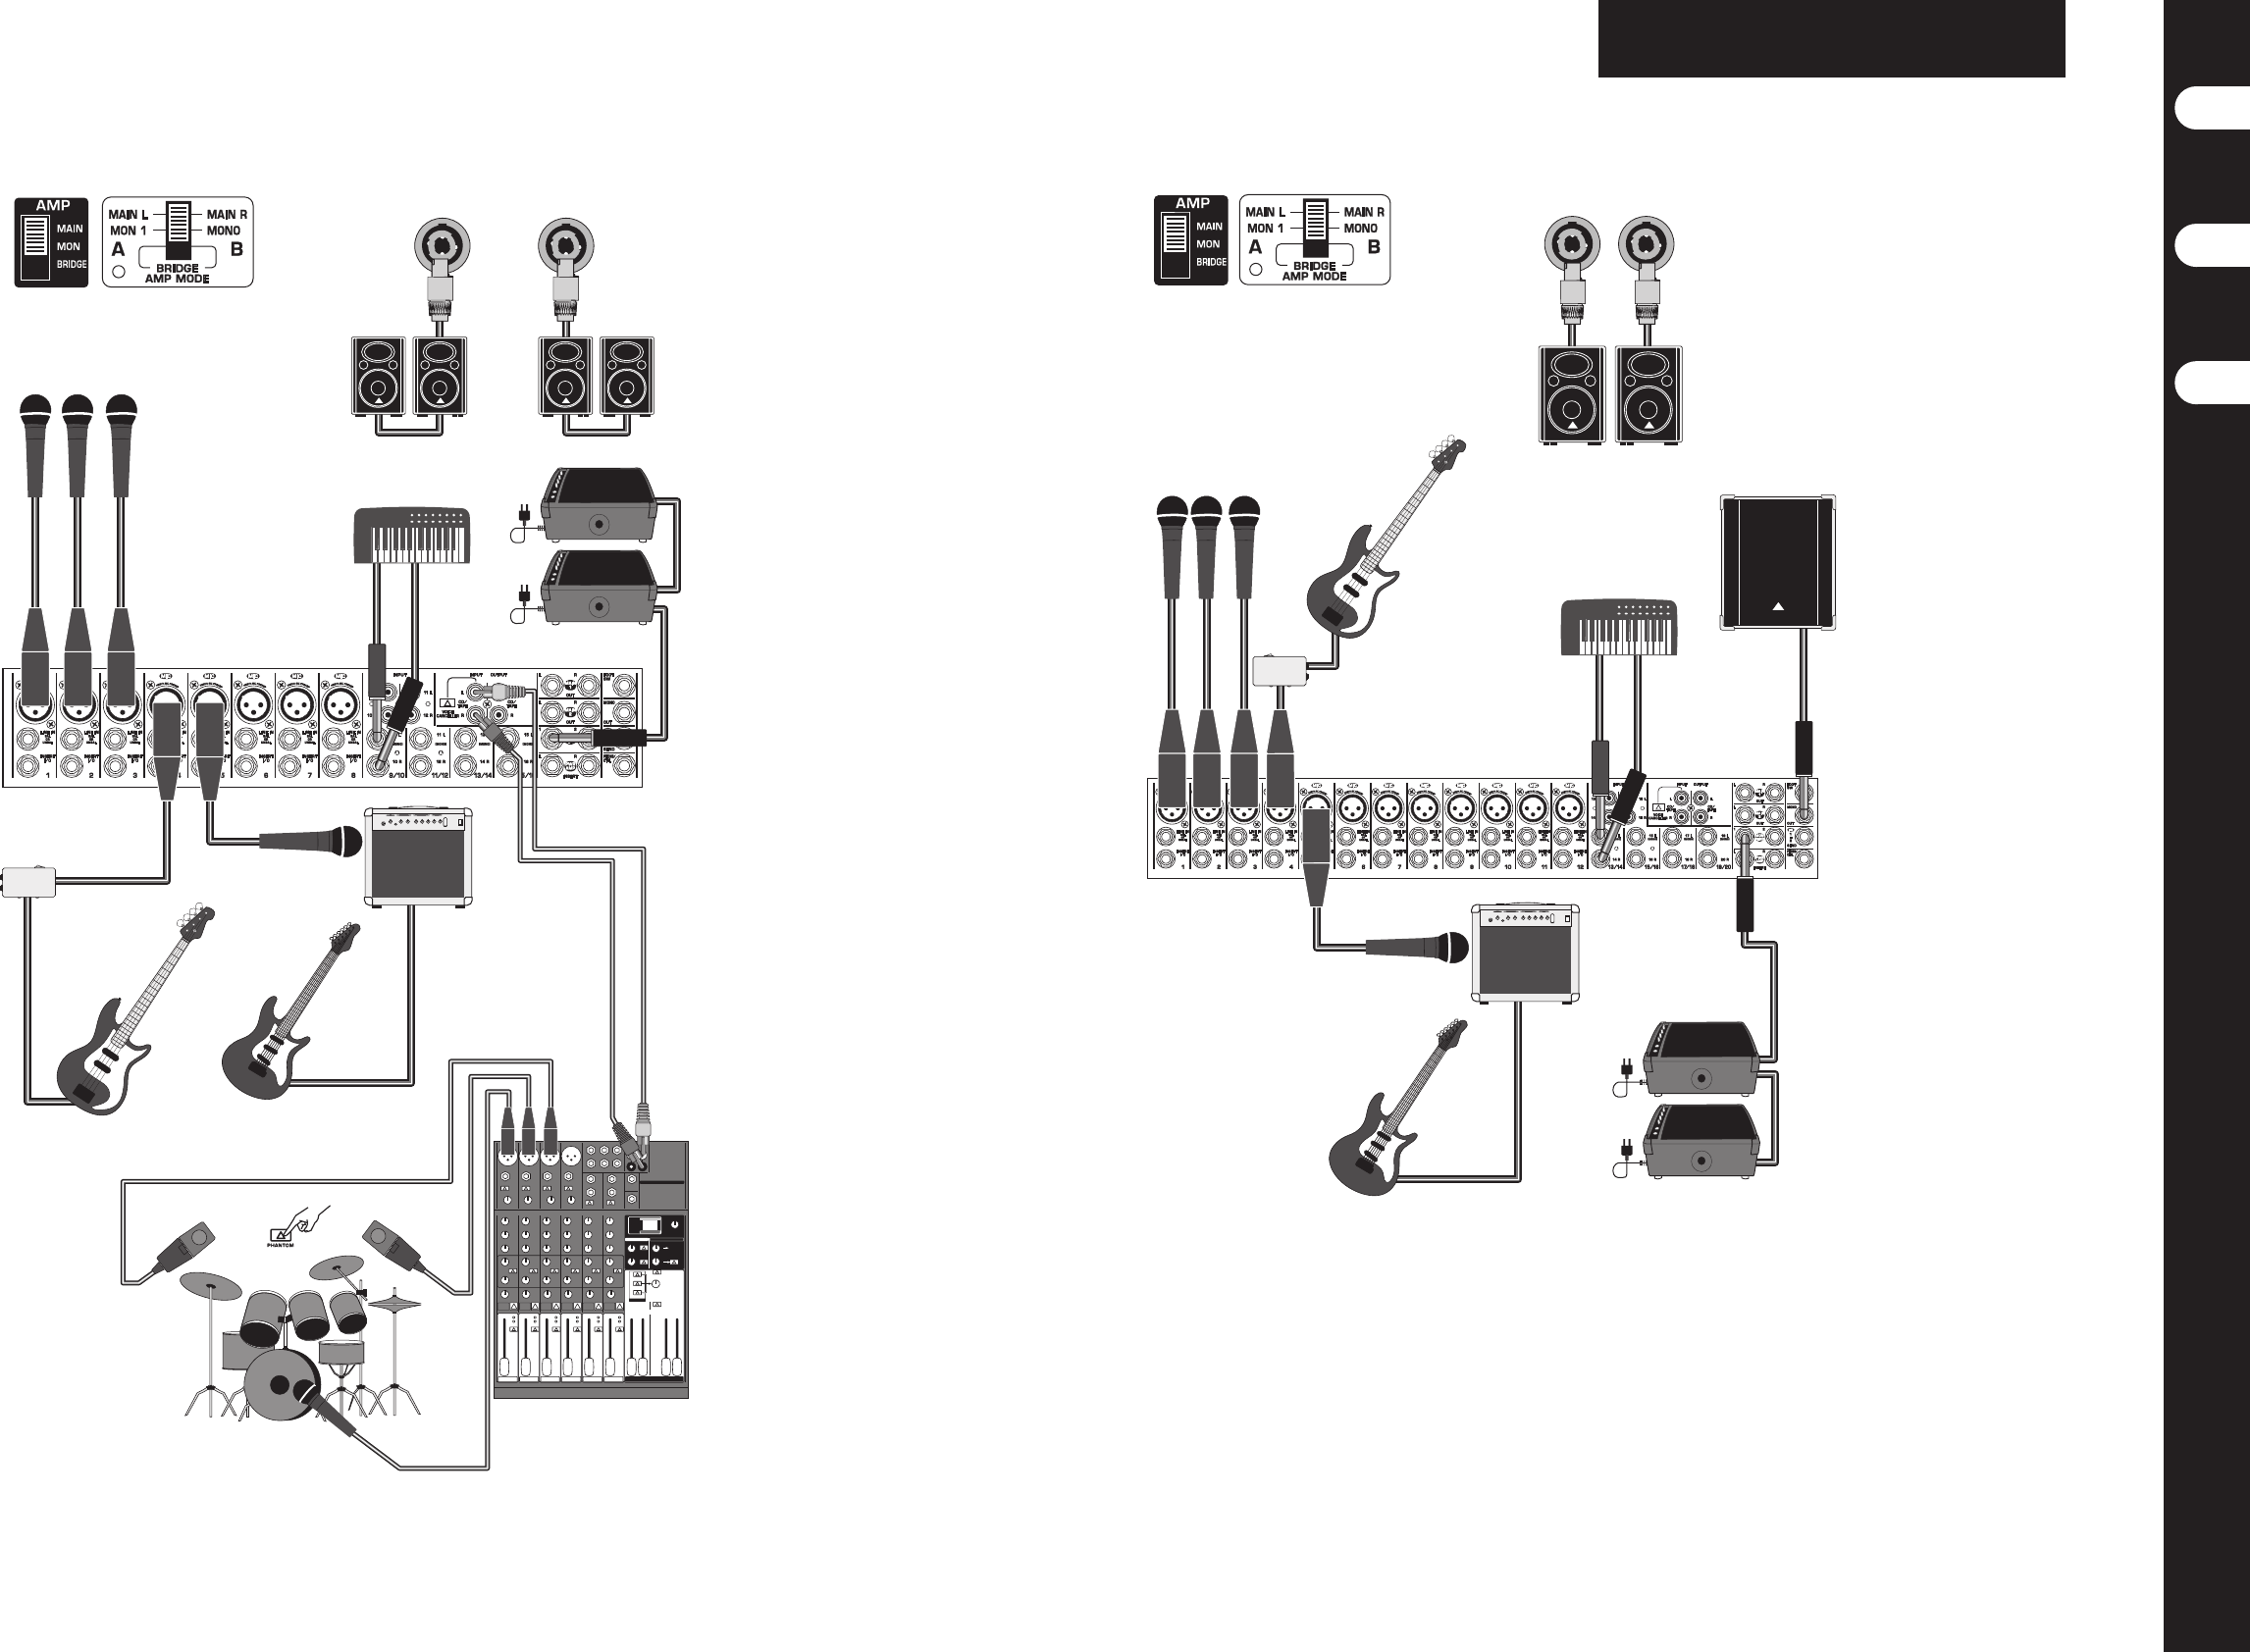 Wiring Diagram For Pmp 6000 Mixer Wire Center Audio Circuit Page 6 Of Behringer Pmp6000 User Guide Manualsonline Com Rh Kitchen